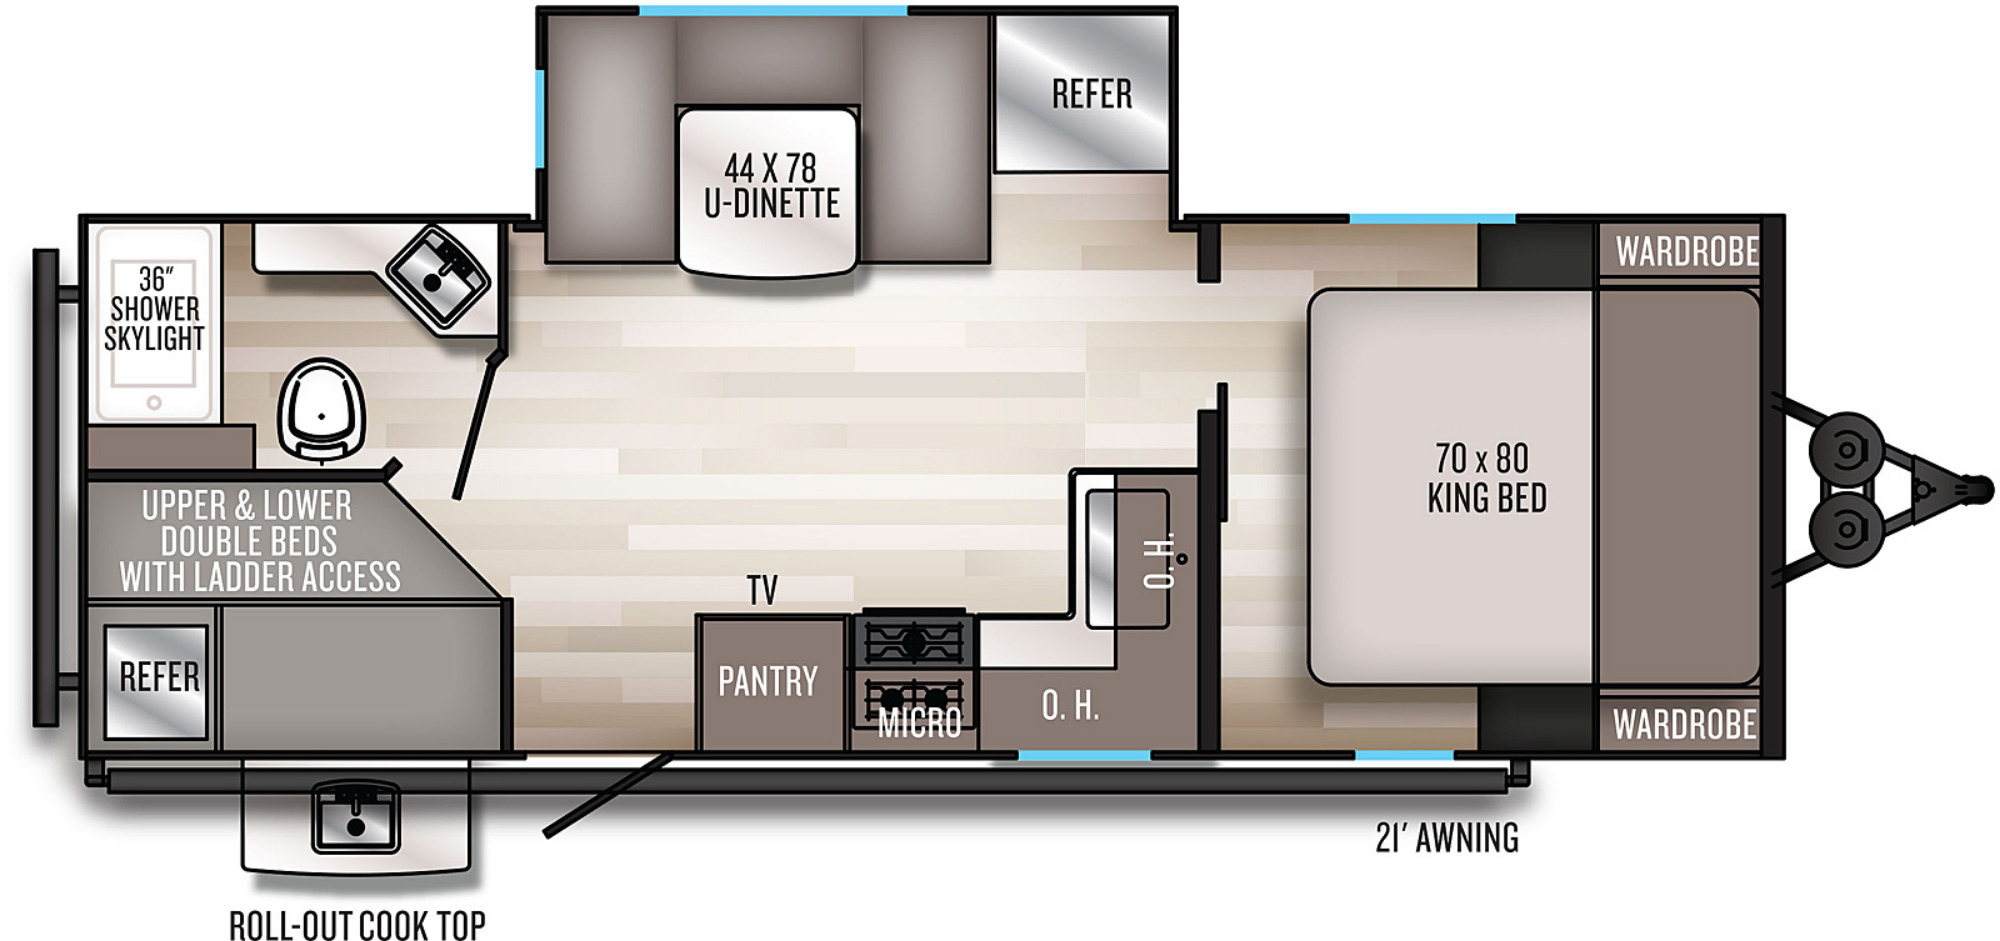 View Floor Plan for 2021 FOREST RIVER SOLAIRE 243BHS